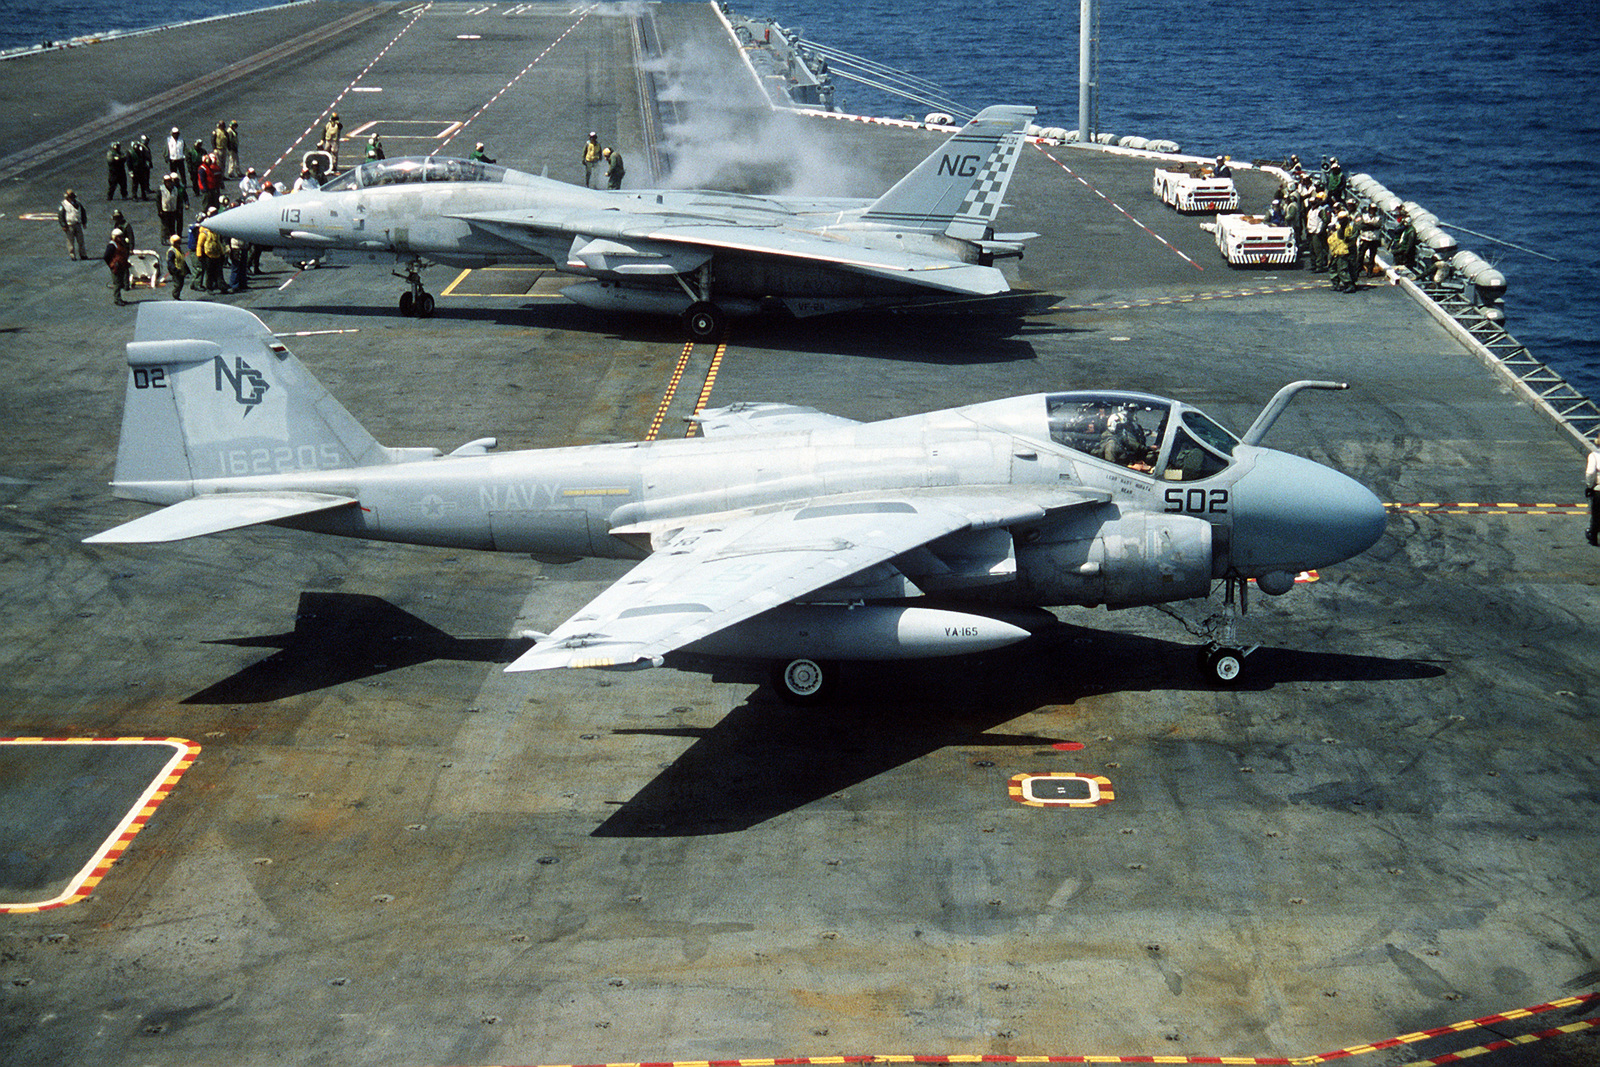 An Attack Squadron 165 (VA-165) A-6E Intruder aircraft, foreground, and a Fighter Squadron 211 (VF-211) F-14A Tomcat aircraft, background, stand by following the launch of another aircraft during flight operations aboard the nuclear-powered aircraft carrier USS NIMITZ (CVN-68)